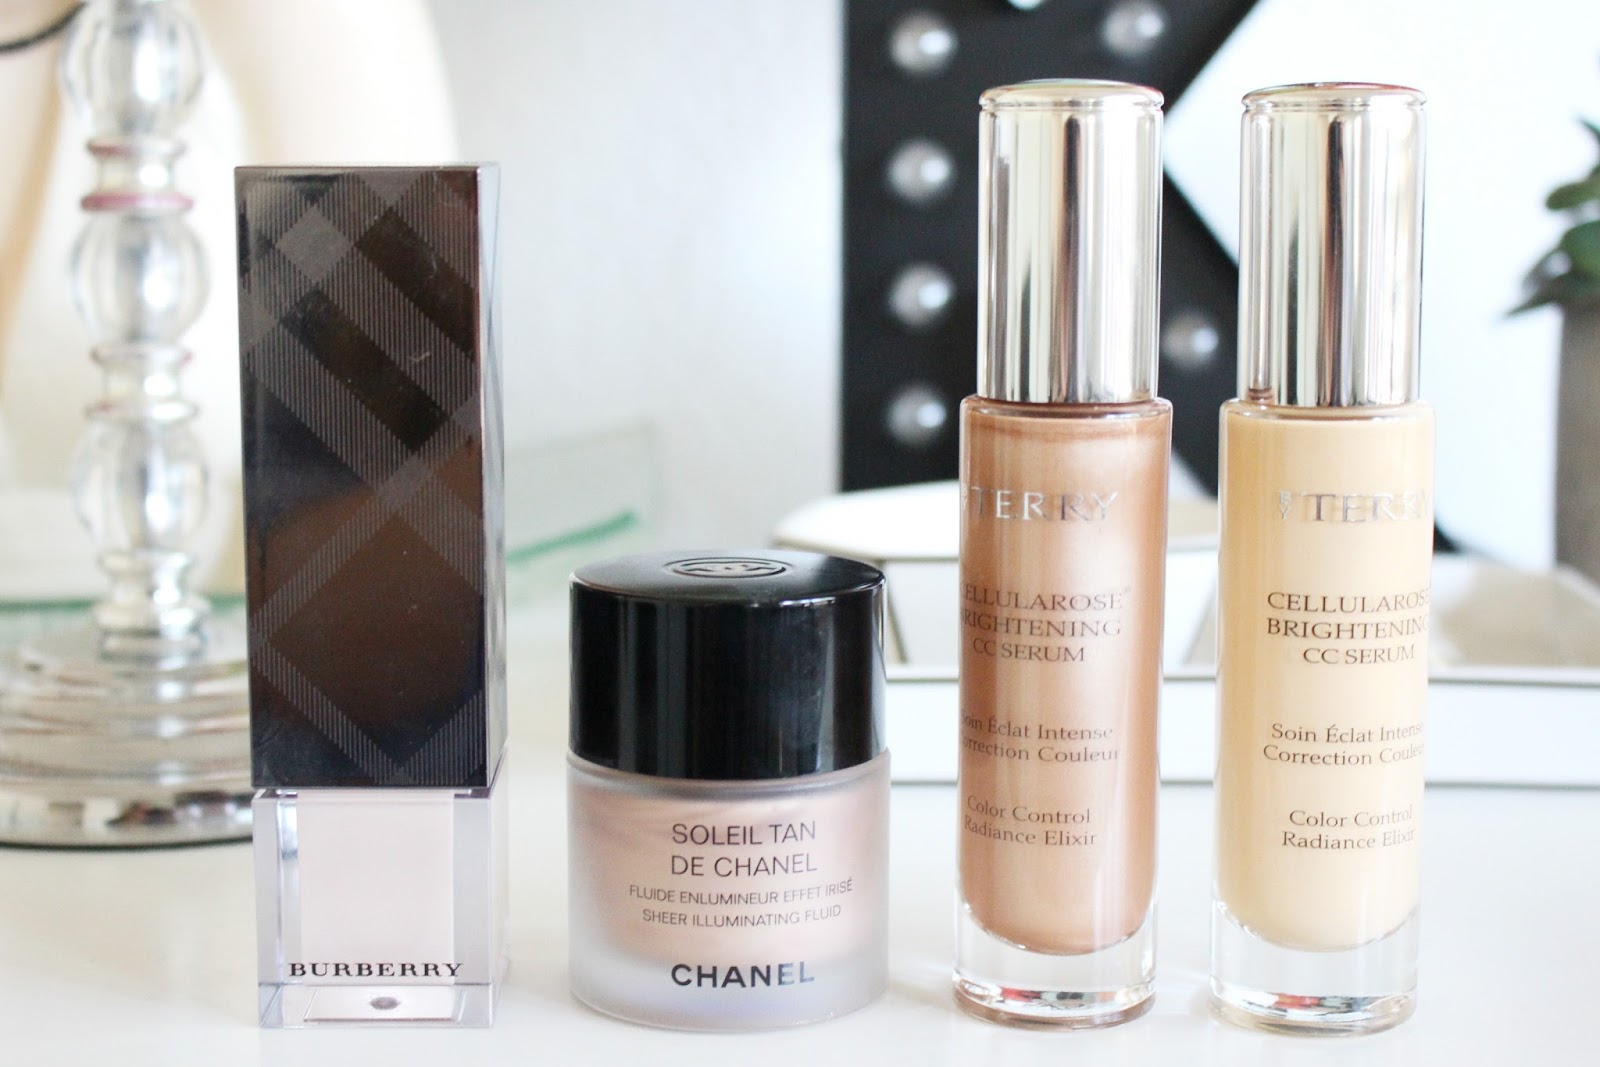 By Terry Cellularose Brightening CC Serum, Chanel Soleil Tan Sheer Illuminating Fluid, Burberry Fresh Glow Luminous Fluid Base